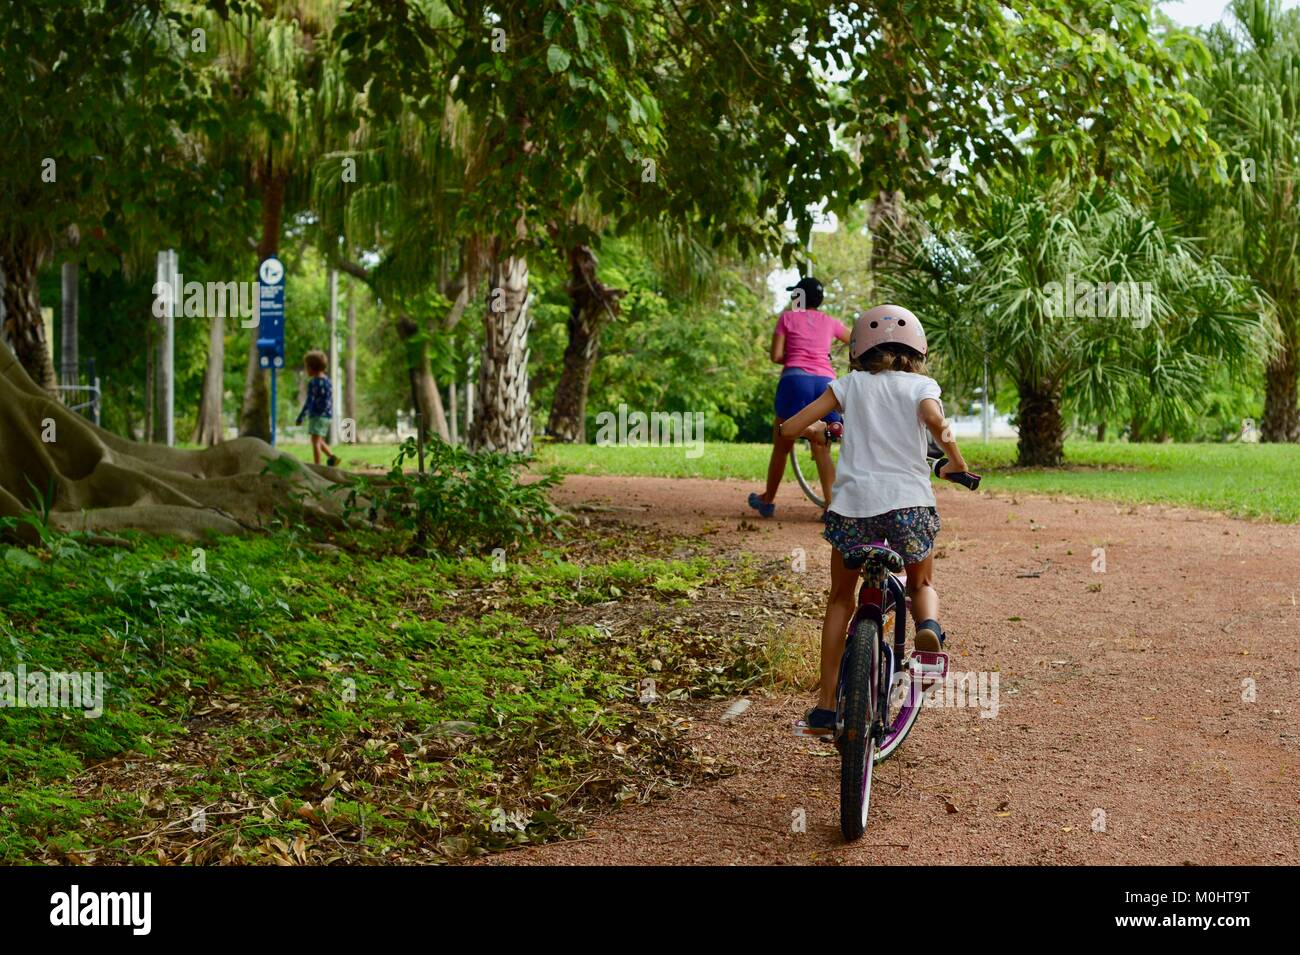 Young girl rides bike on a path with mother and sister walking, Anderson Park Botanic Gardens, Townsville, Queensland, Stock Photo